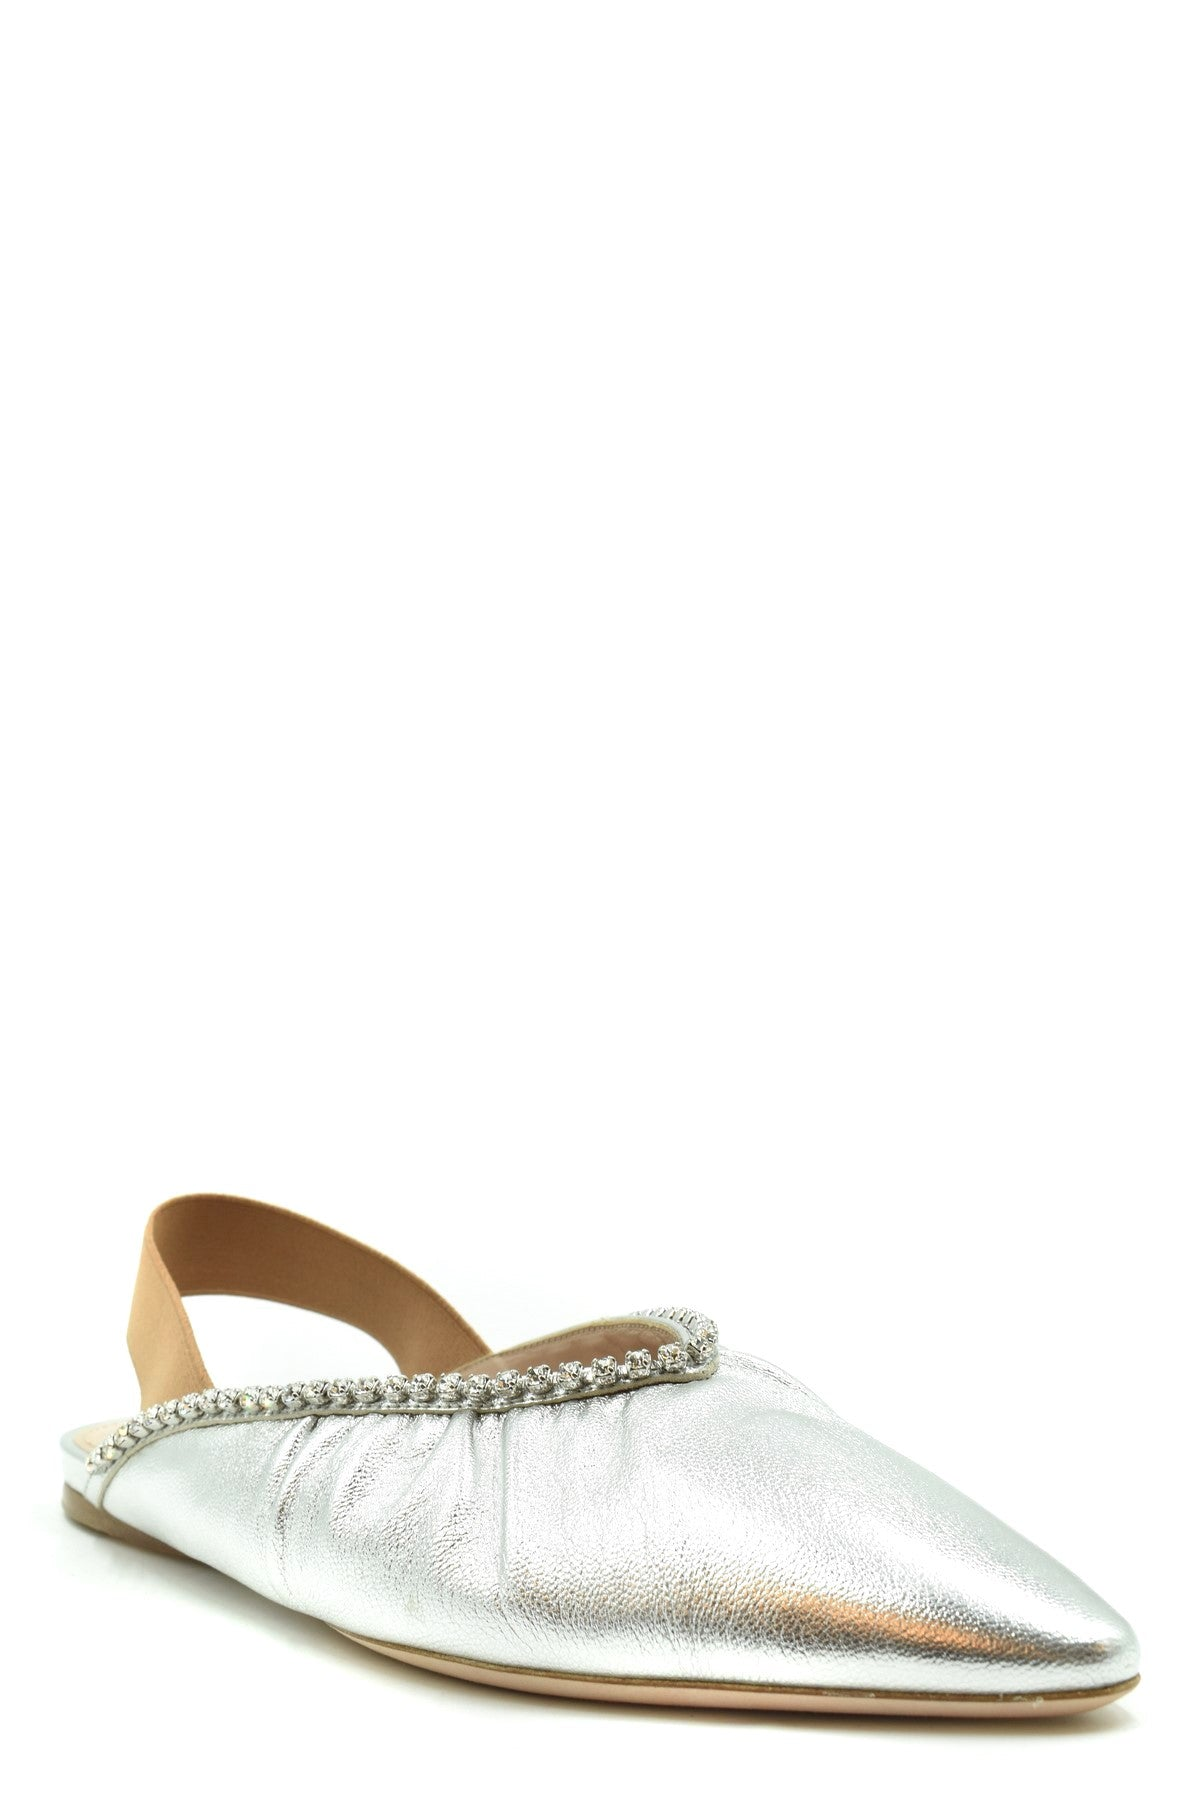 Miu Miu-Women's Fashion - Women's Shoes - Slippers-Product Details Terms: New With LabelMain Color: SilverType Of Accessory: ShoesSeason: Spring / SummerMade In: ItalyGender: WomanSize: EuComposition: Leather 100%Year: 2020Manufacturer Part Number: 5F919C-Keyomi-Sook